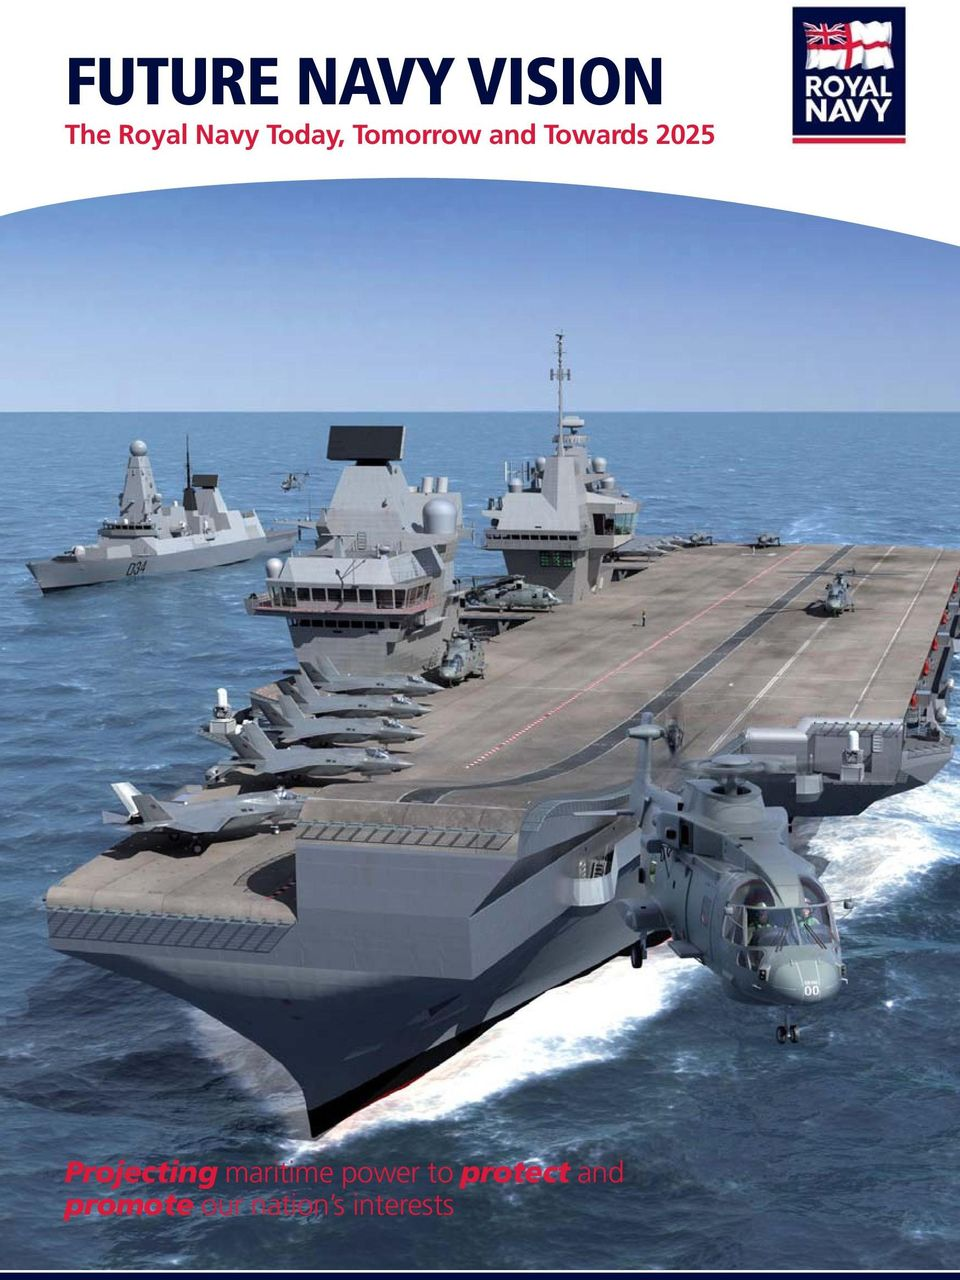 Projecting maritime power to